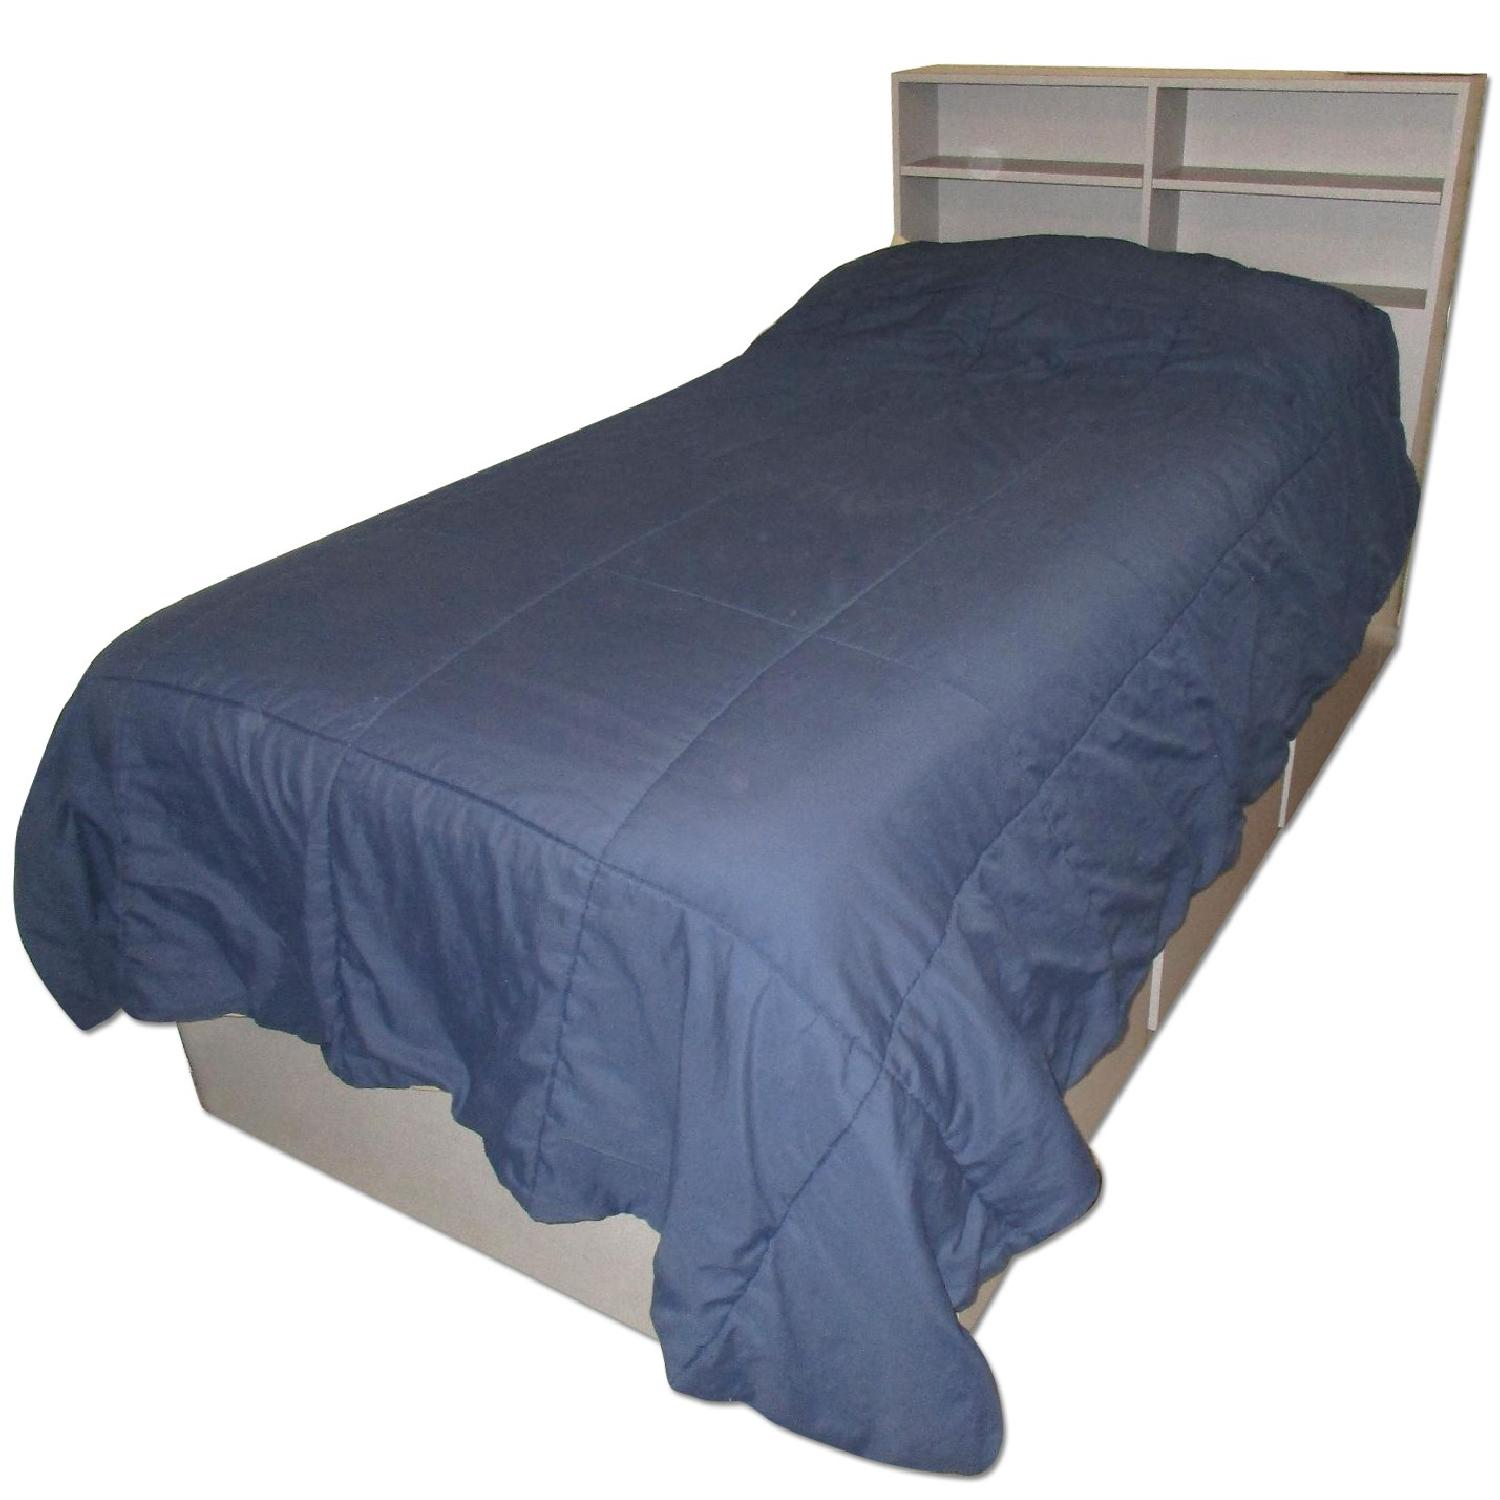 Twin Captain's Bed w/ 3 Pullout Drawers & Storage Headboard - image-0